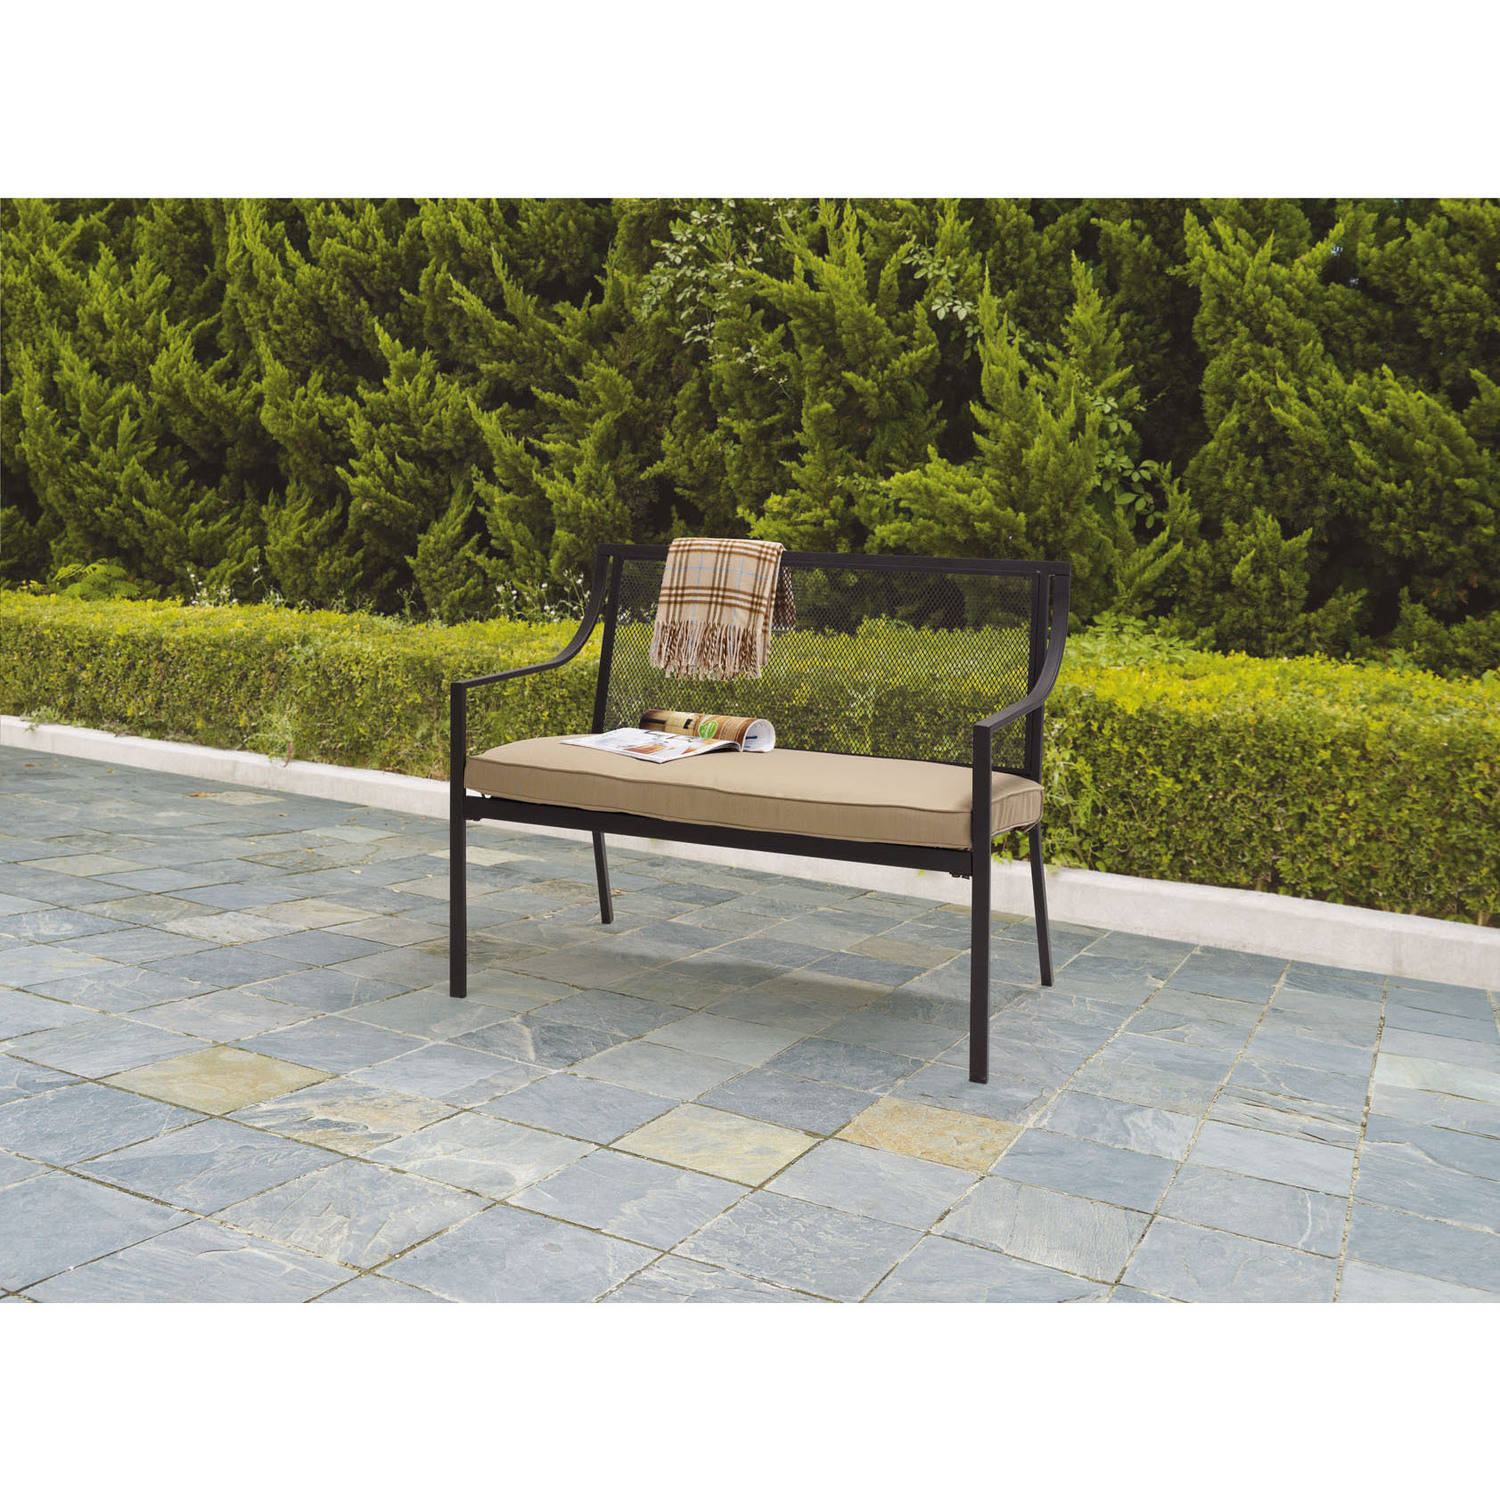 Mainstays Bellingham 2 Seat Outdoor Bench With Cushion Tan